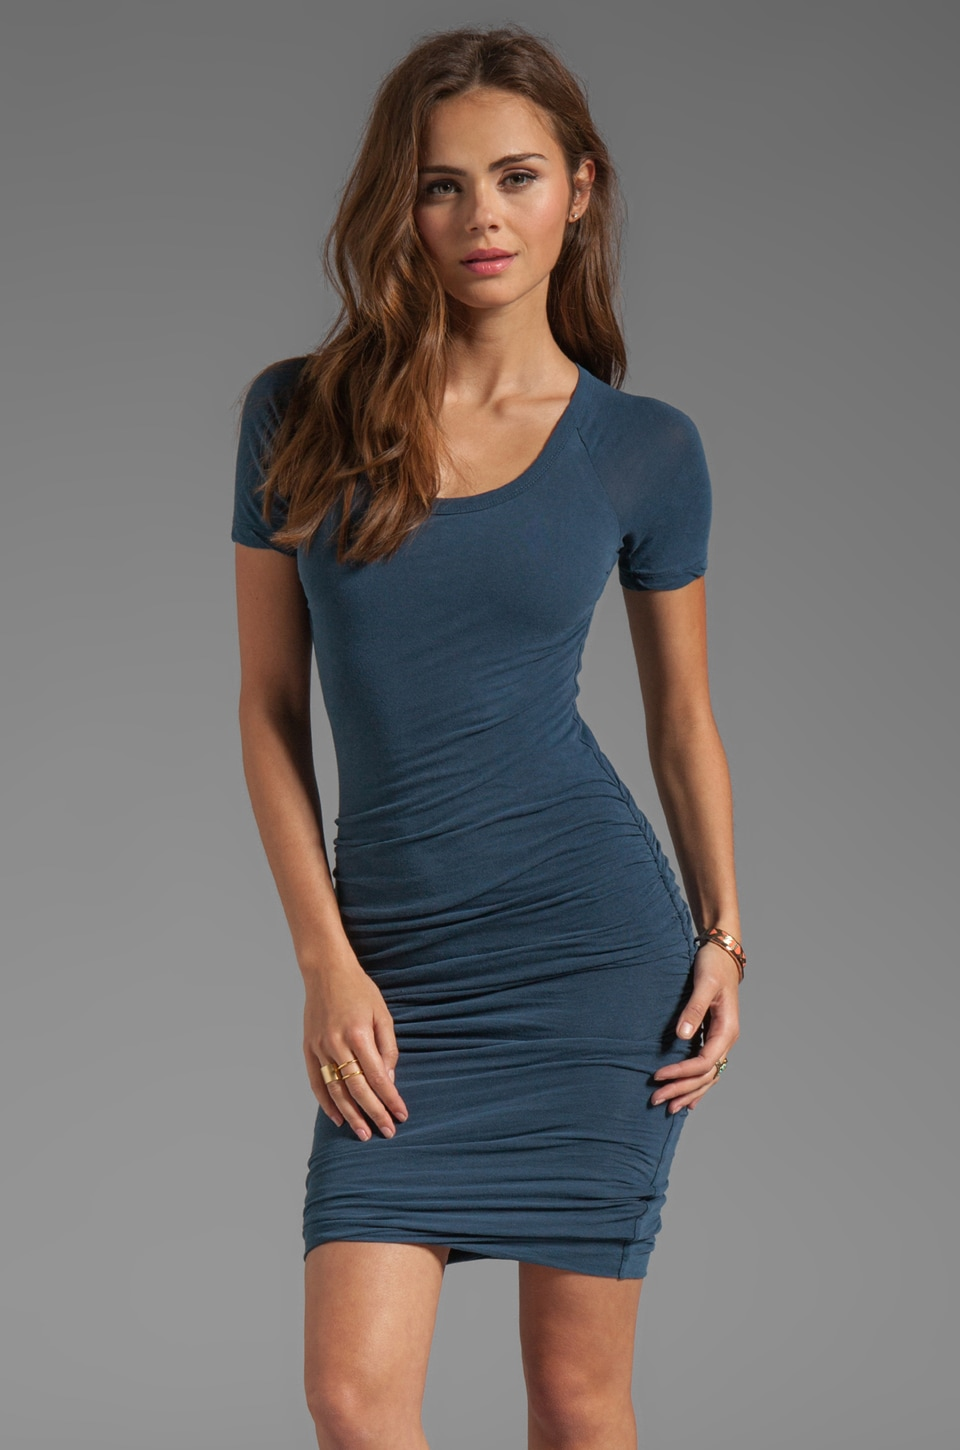 James Perse Rouched Raglan Dress in Neptune